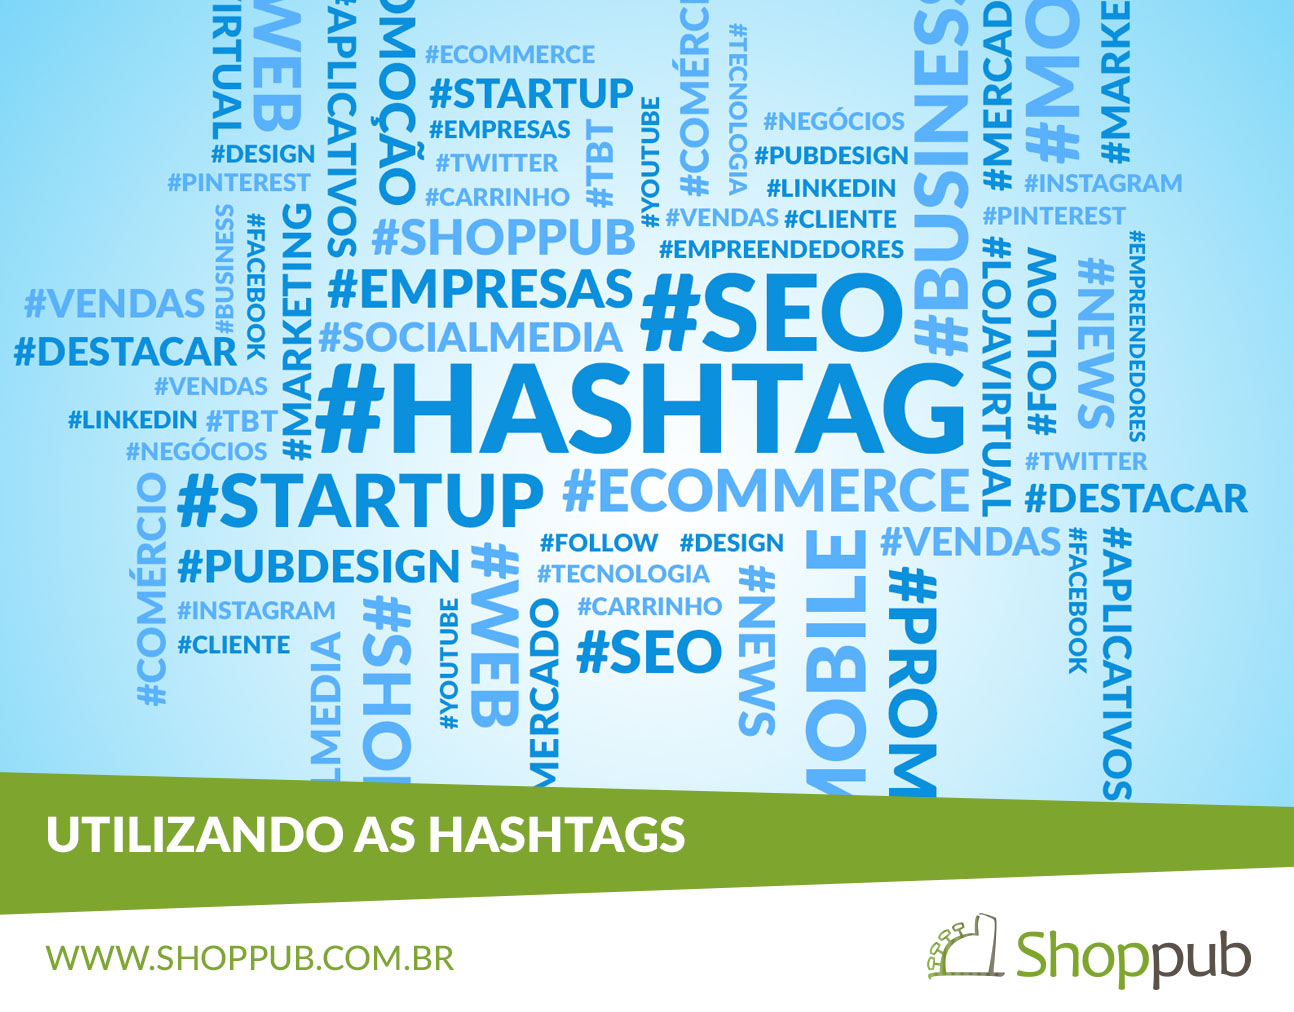 Utilizando as Hashtags